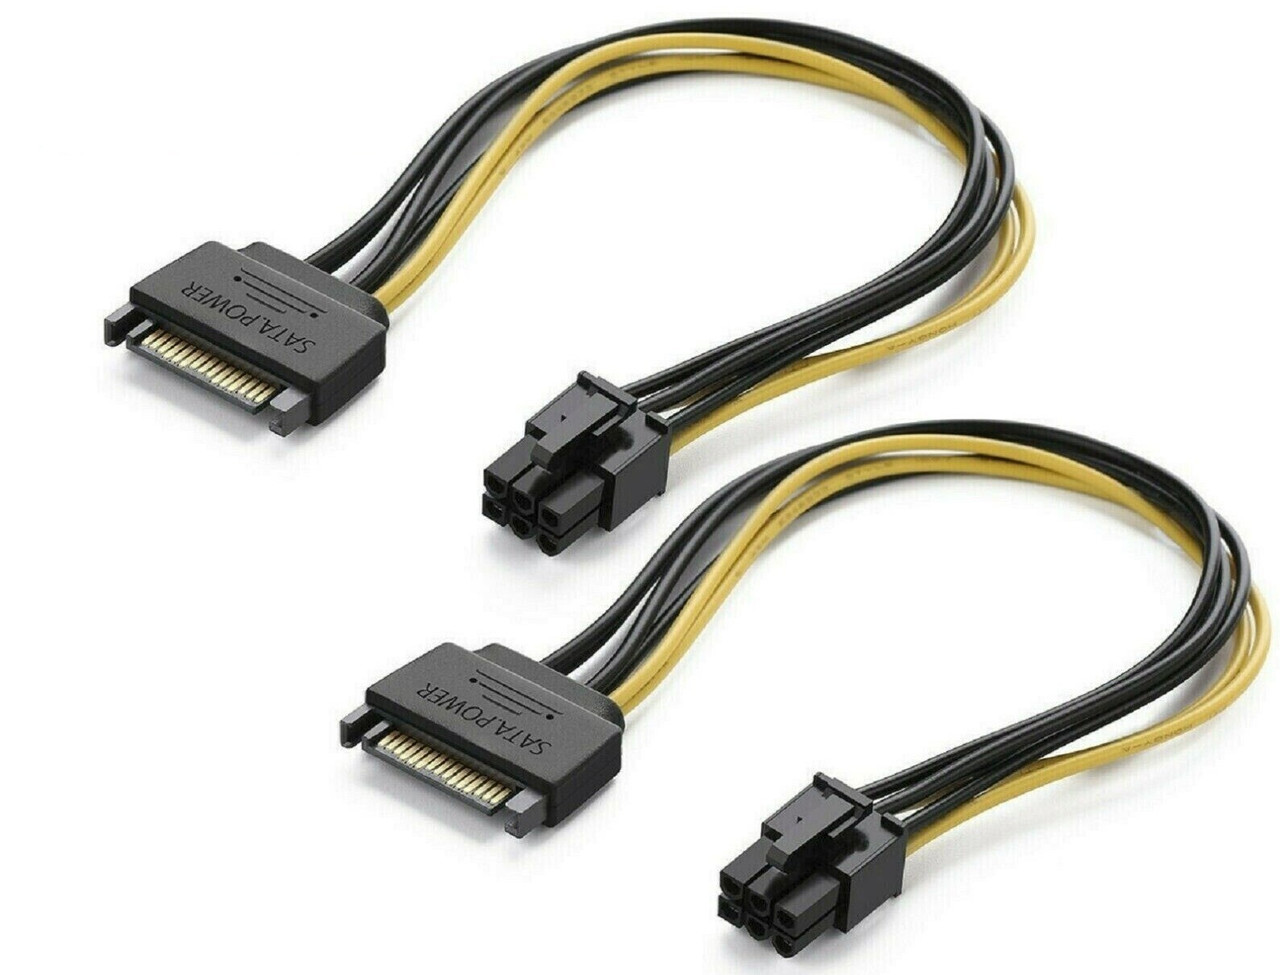 (2 Pack) SATA 8-Inch 15-Pin to 6-Pin PCI Express Card Power Cable